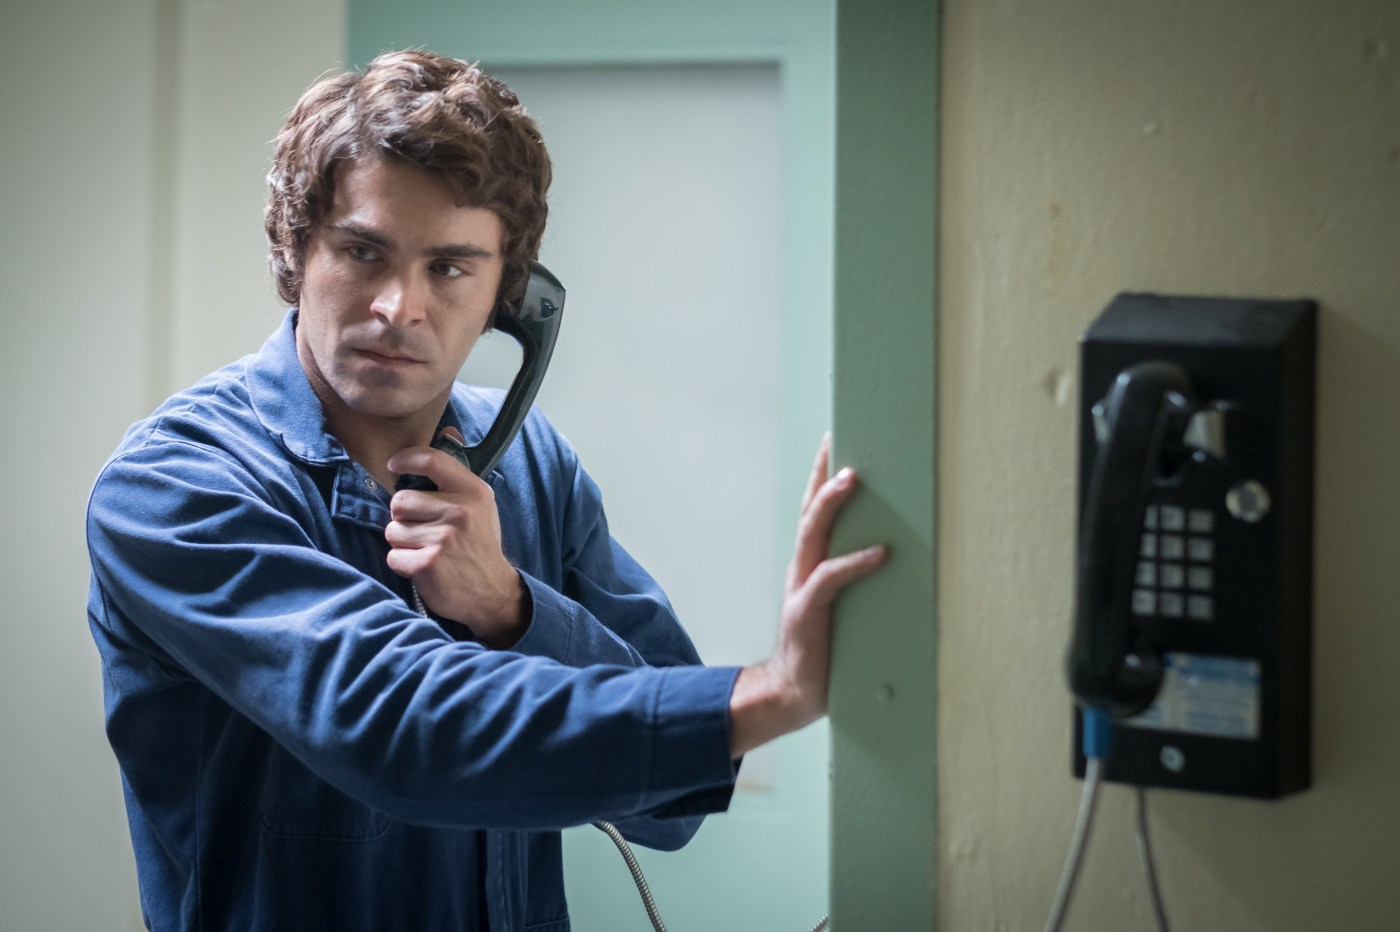 Extremely Wicked, Shockingly Evil and Vile Review: Efron and Collins shine in this Ted Bundy narrative